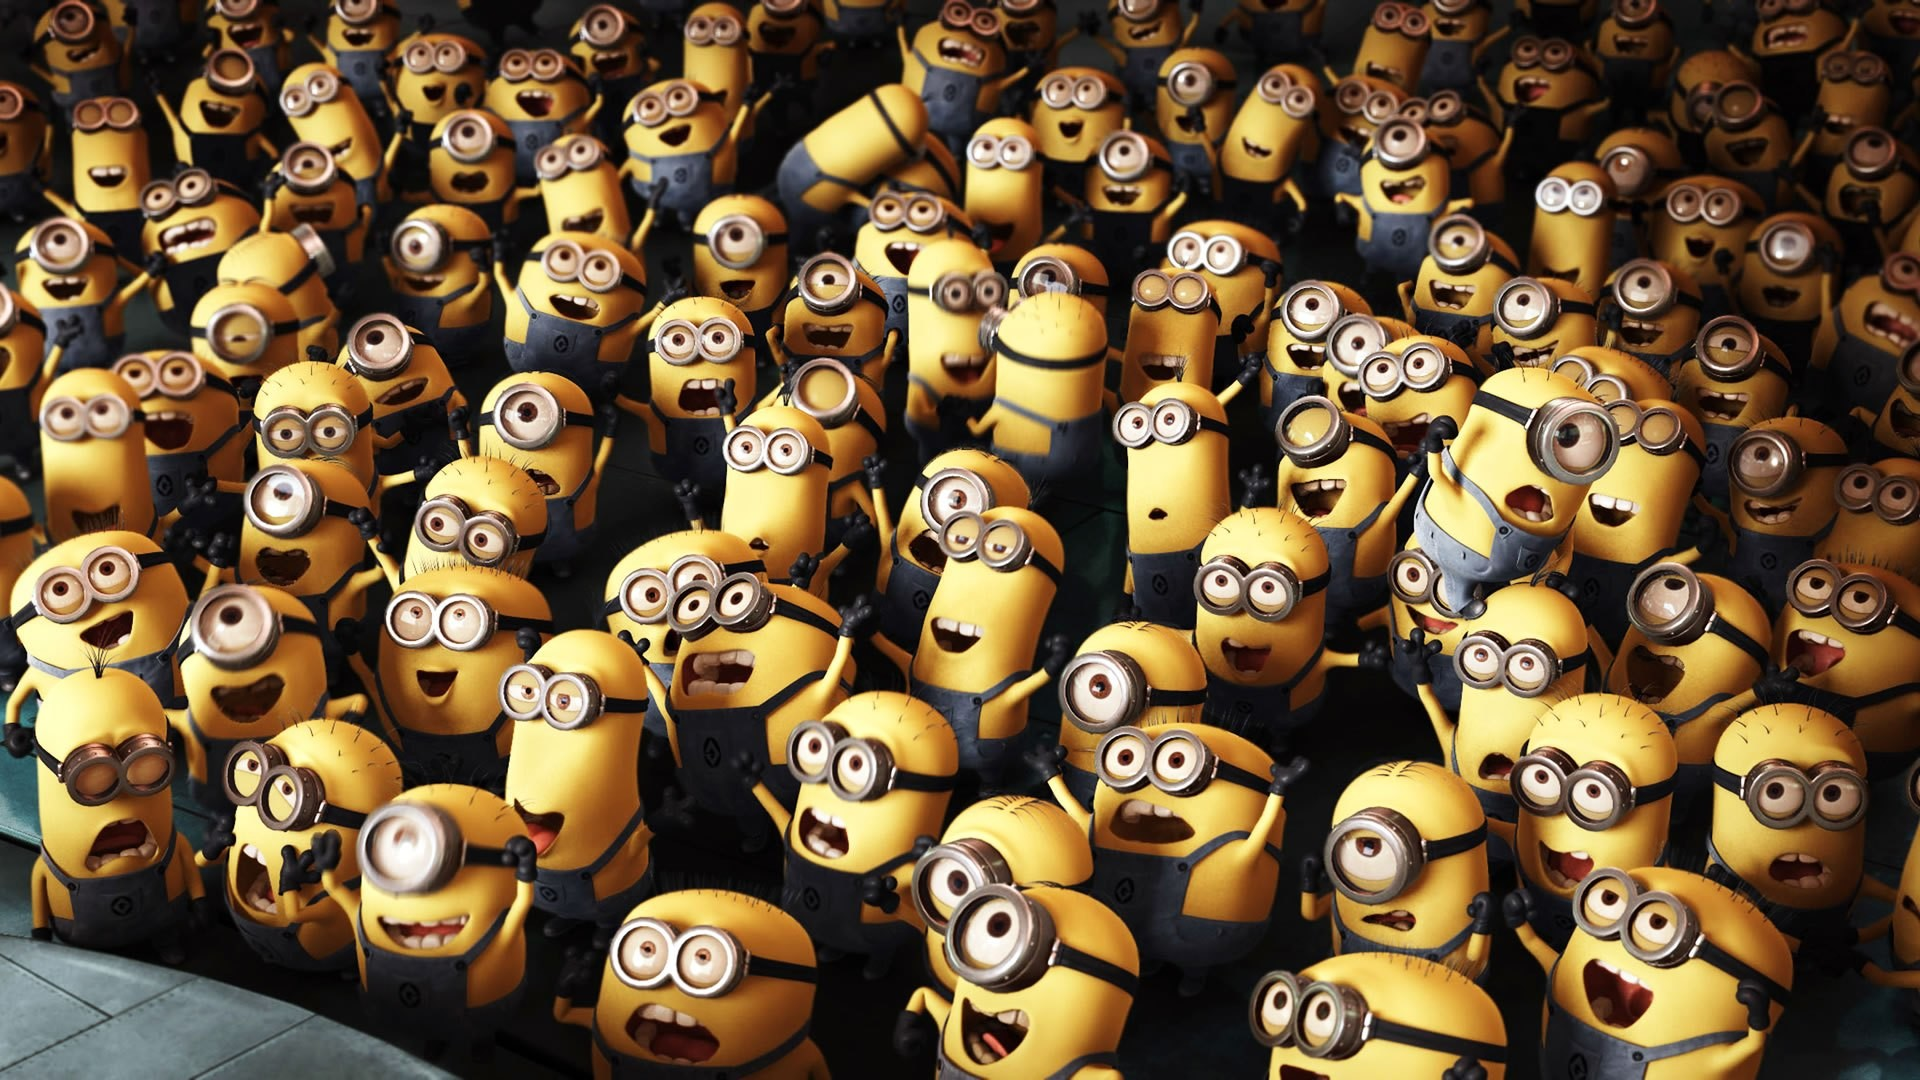 1920x1080 Funny-Minion-Wallpapers-Desktop-Crowd